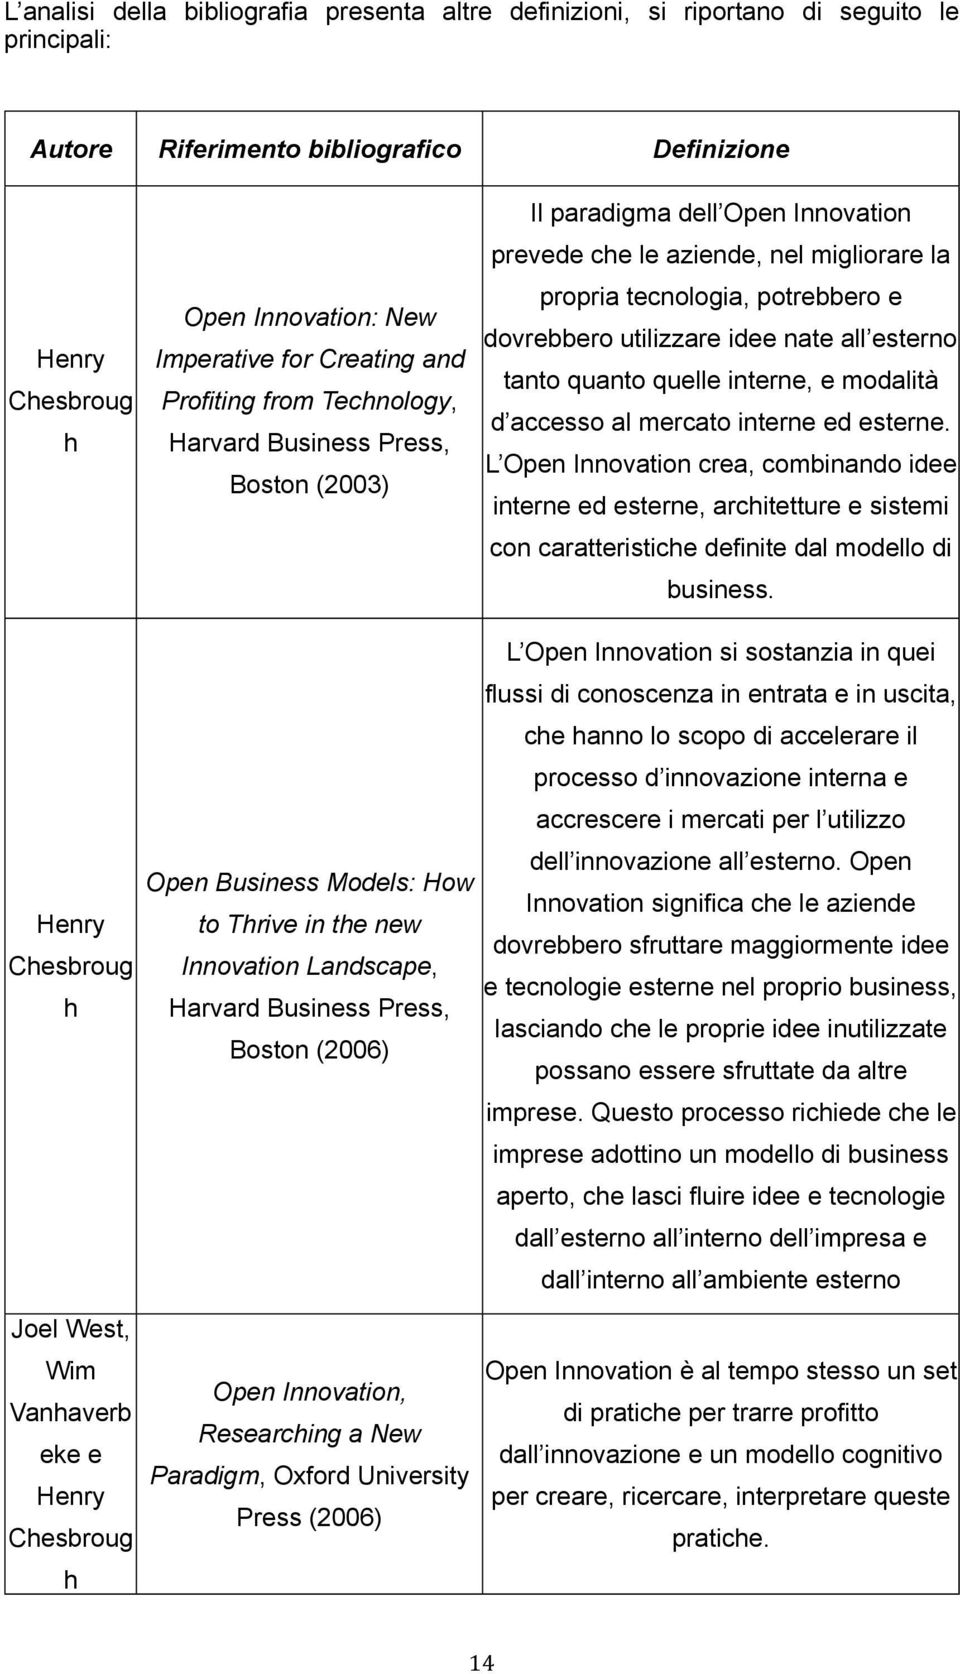 Innovation Landscape, Harvard Business Press, Boston (2006) Open Innovation, Researching a New Paradigm, Oxford University Press (2006) Il paradigma dell Open Innovation prevede che le aziende, nel